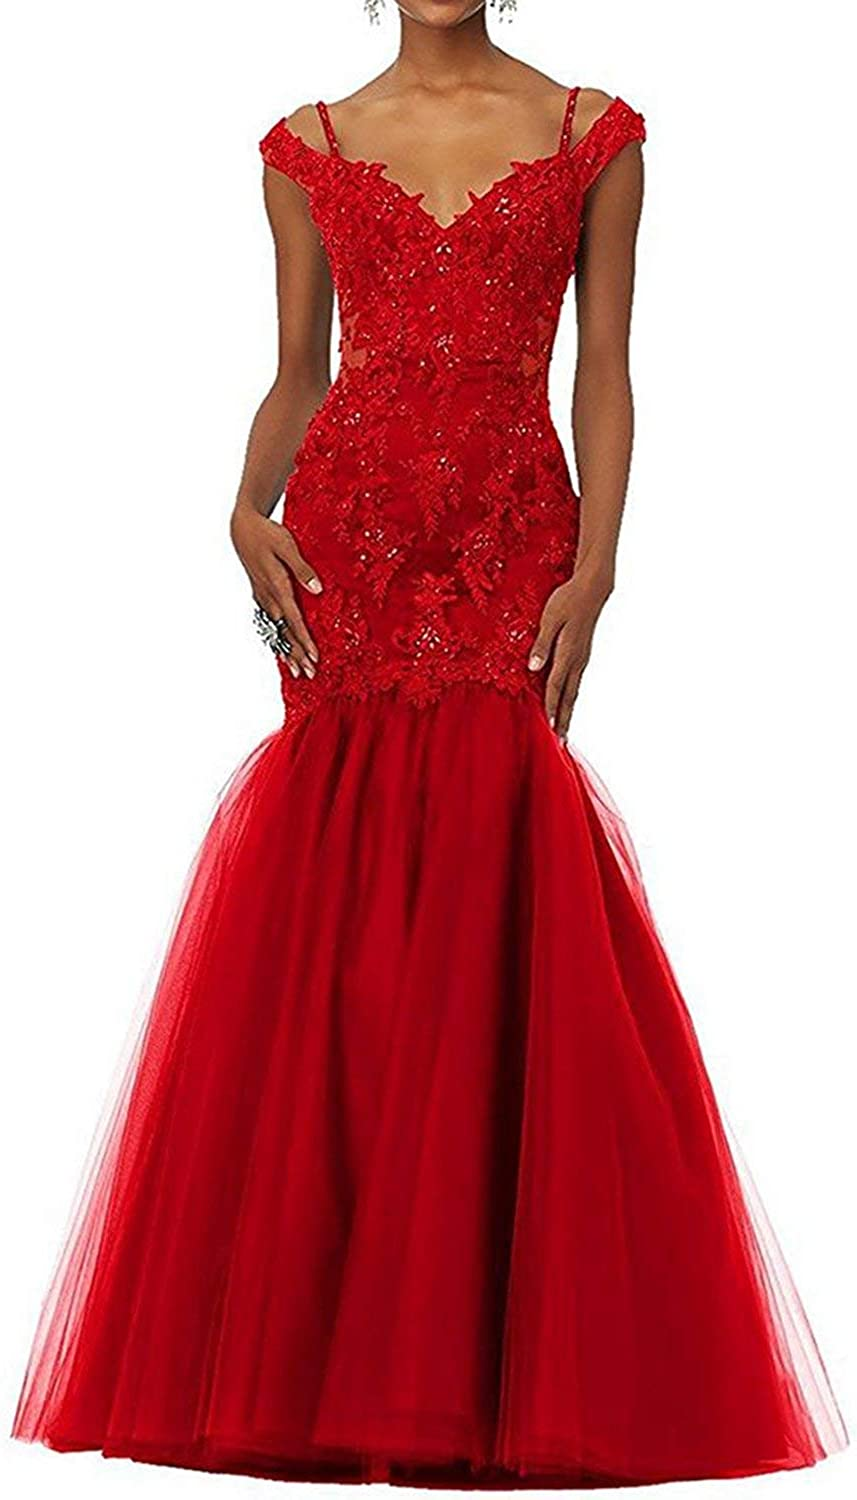 Fitty Lell Women's Mermaid Lace Evening Dress Off The Shoulder Prom Gowns